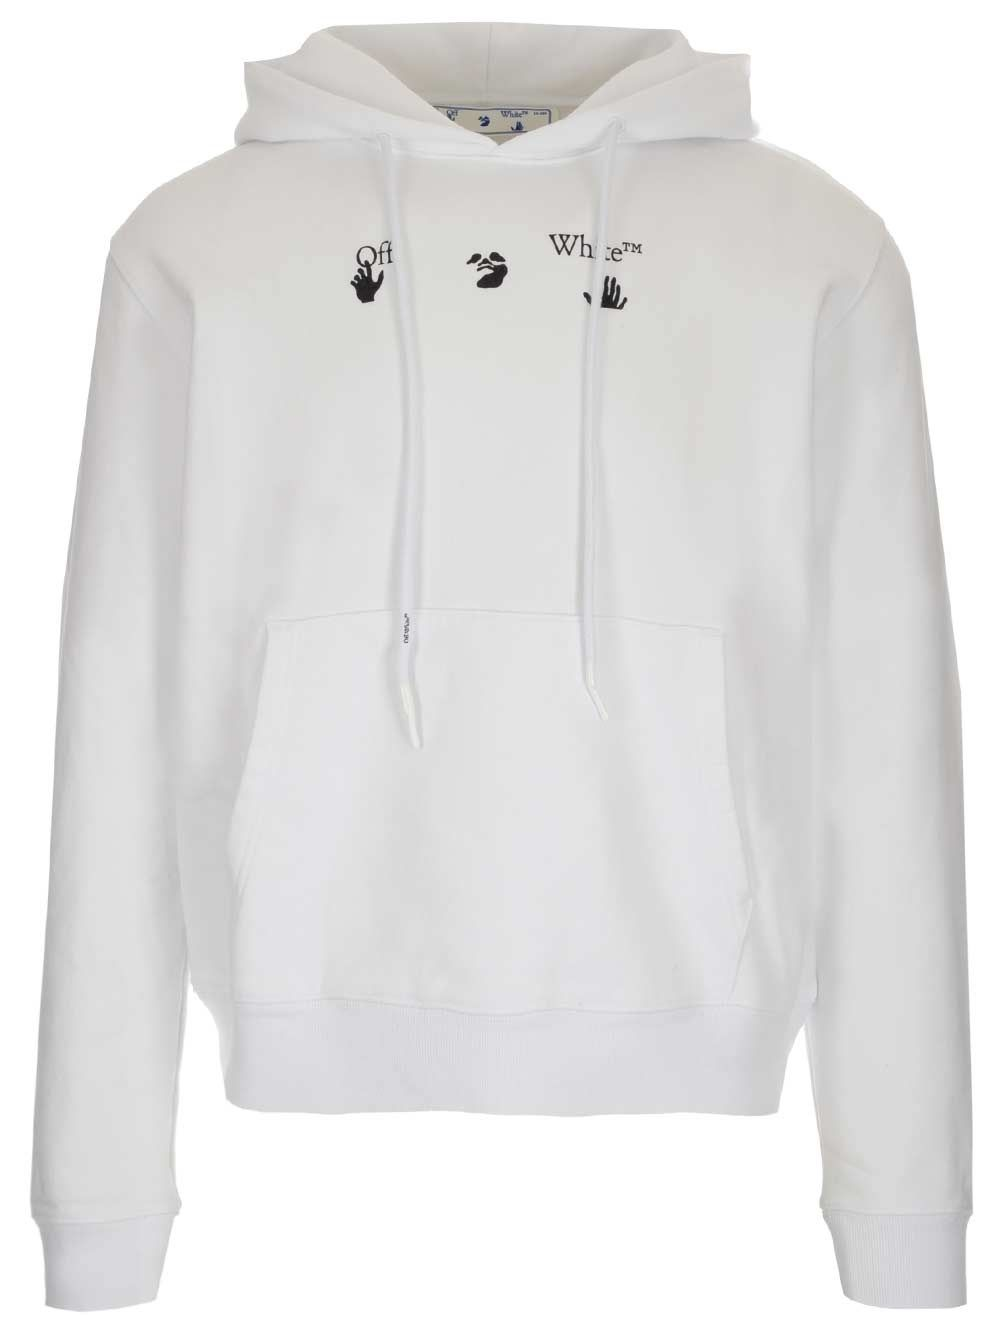 Off-White OFF-WHITE MEN'S WHITE OTHER MATERIALS SWEATSHIRT